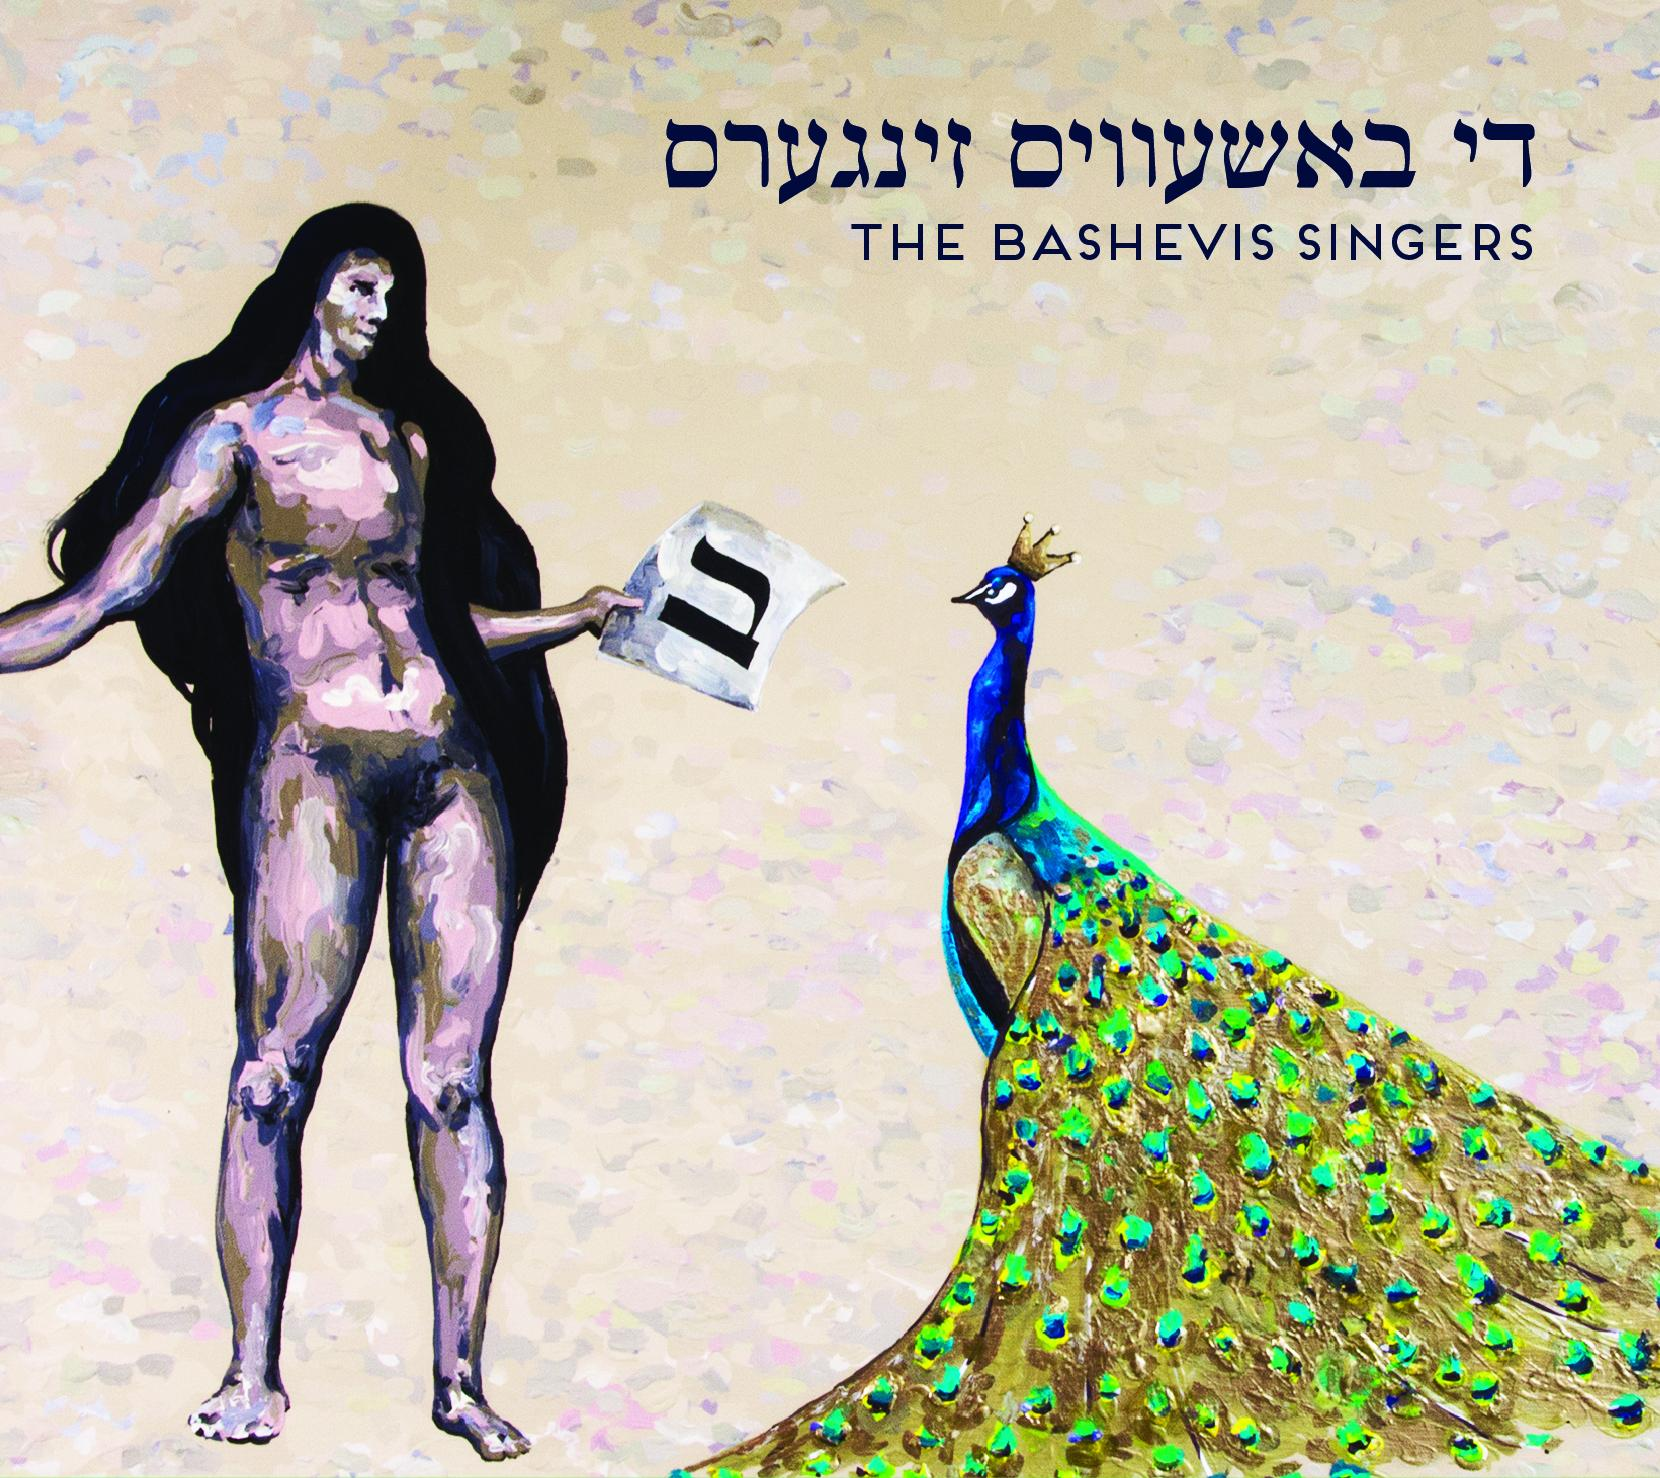 The Bashevis Singers